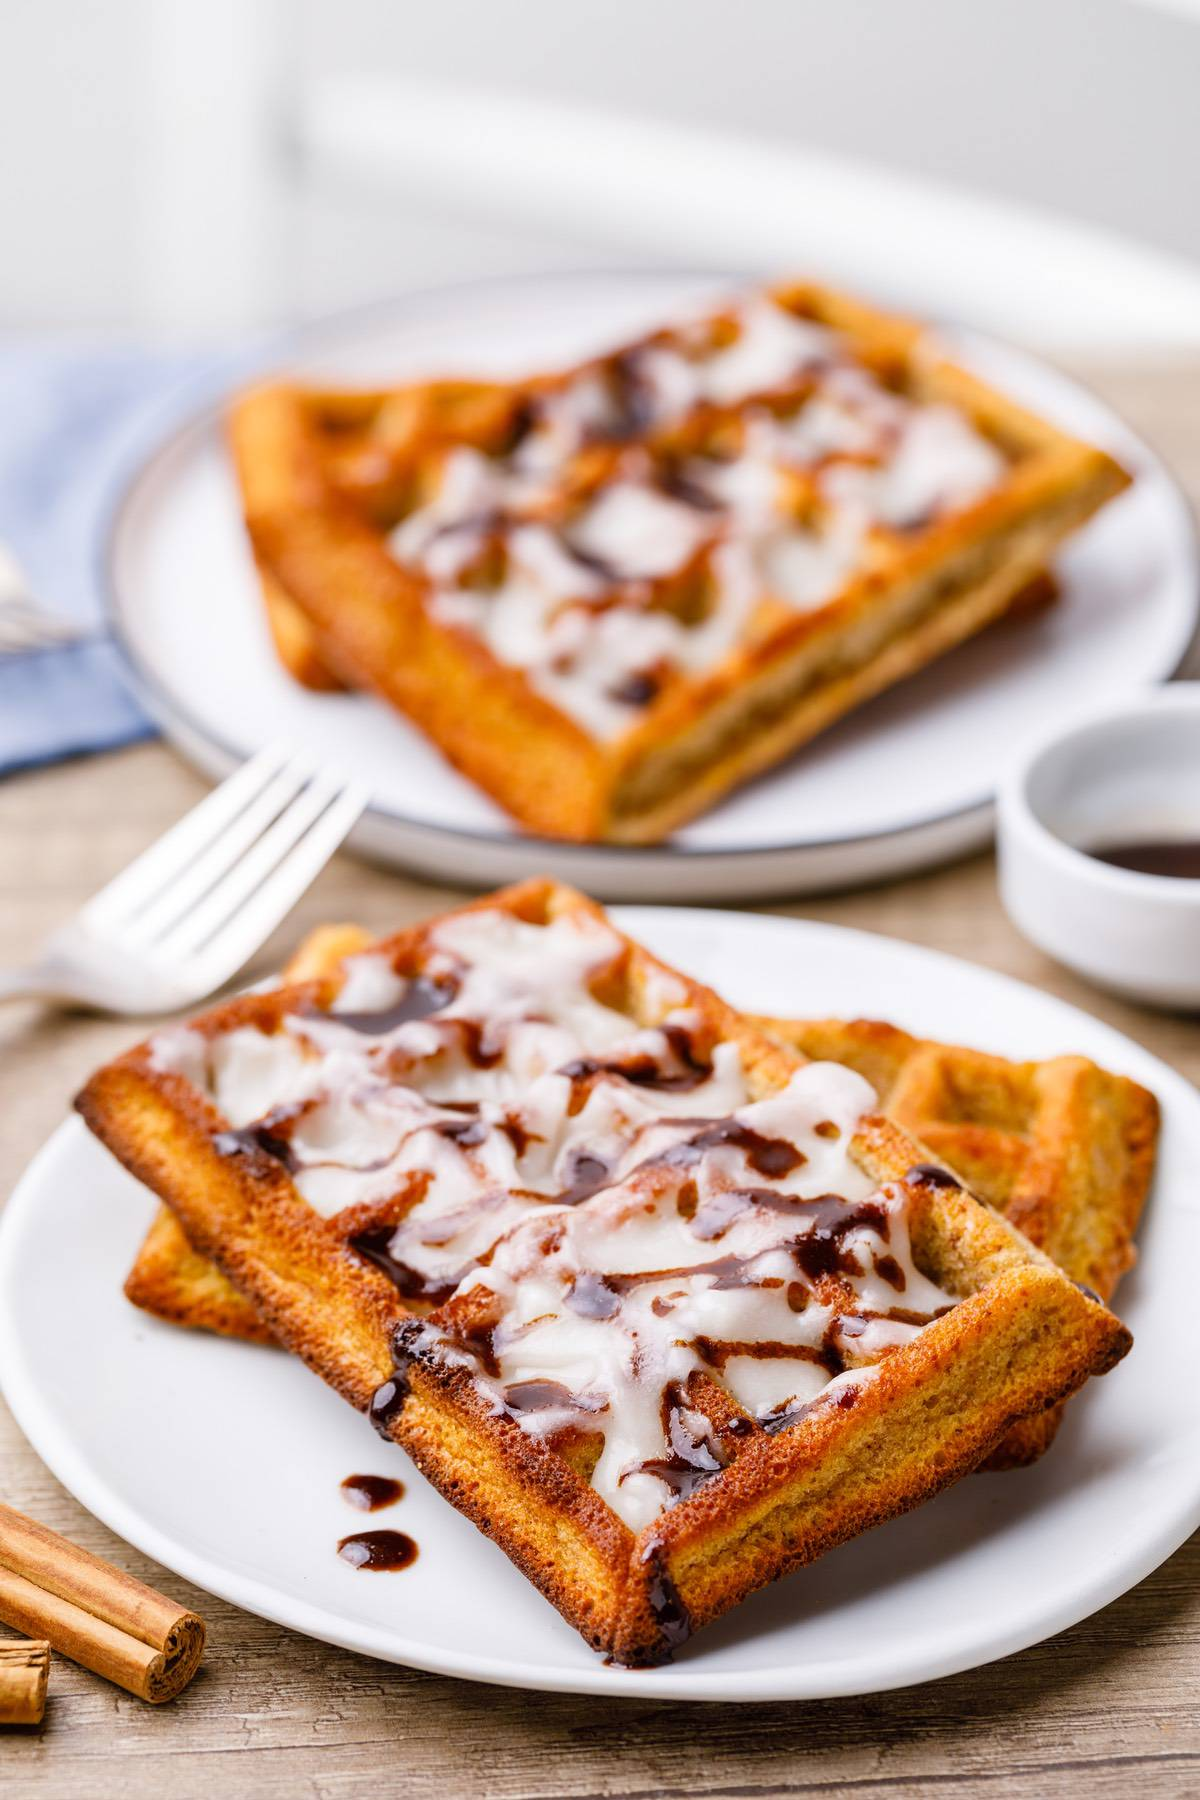 Home.fit cinnamon-roll-paleo-waffles-6 Crave-worthy Cinnamon Roll Paleo Waffles